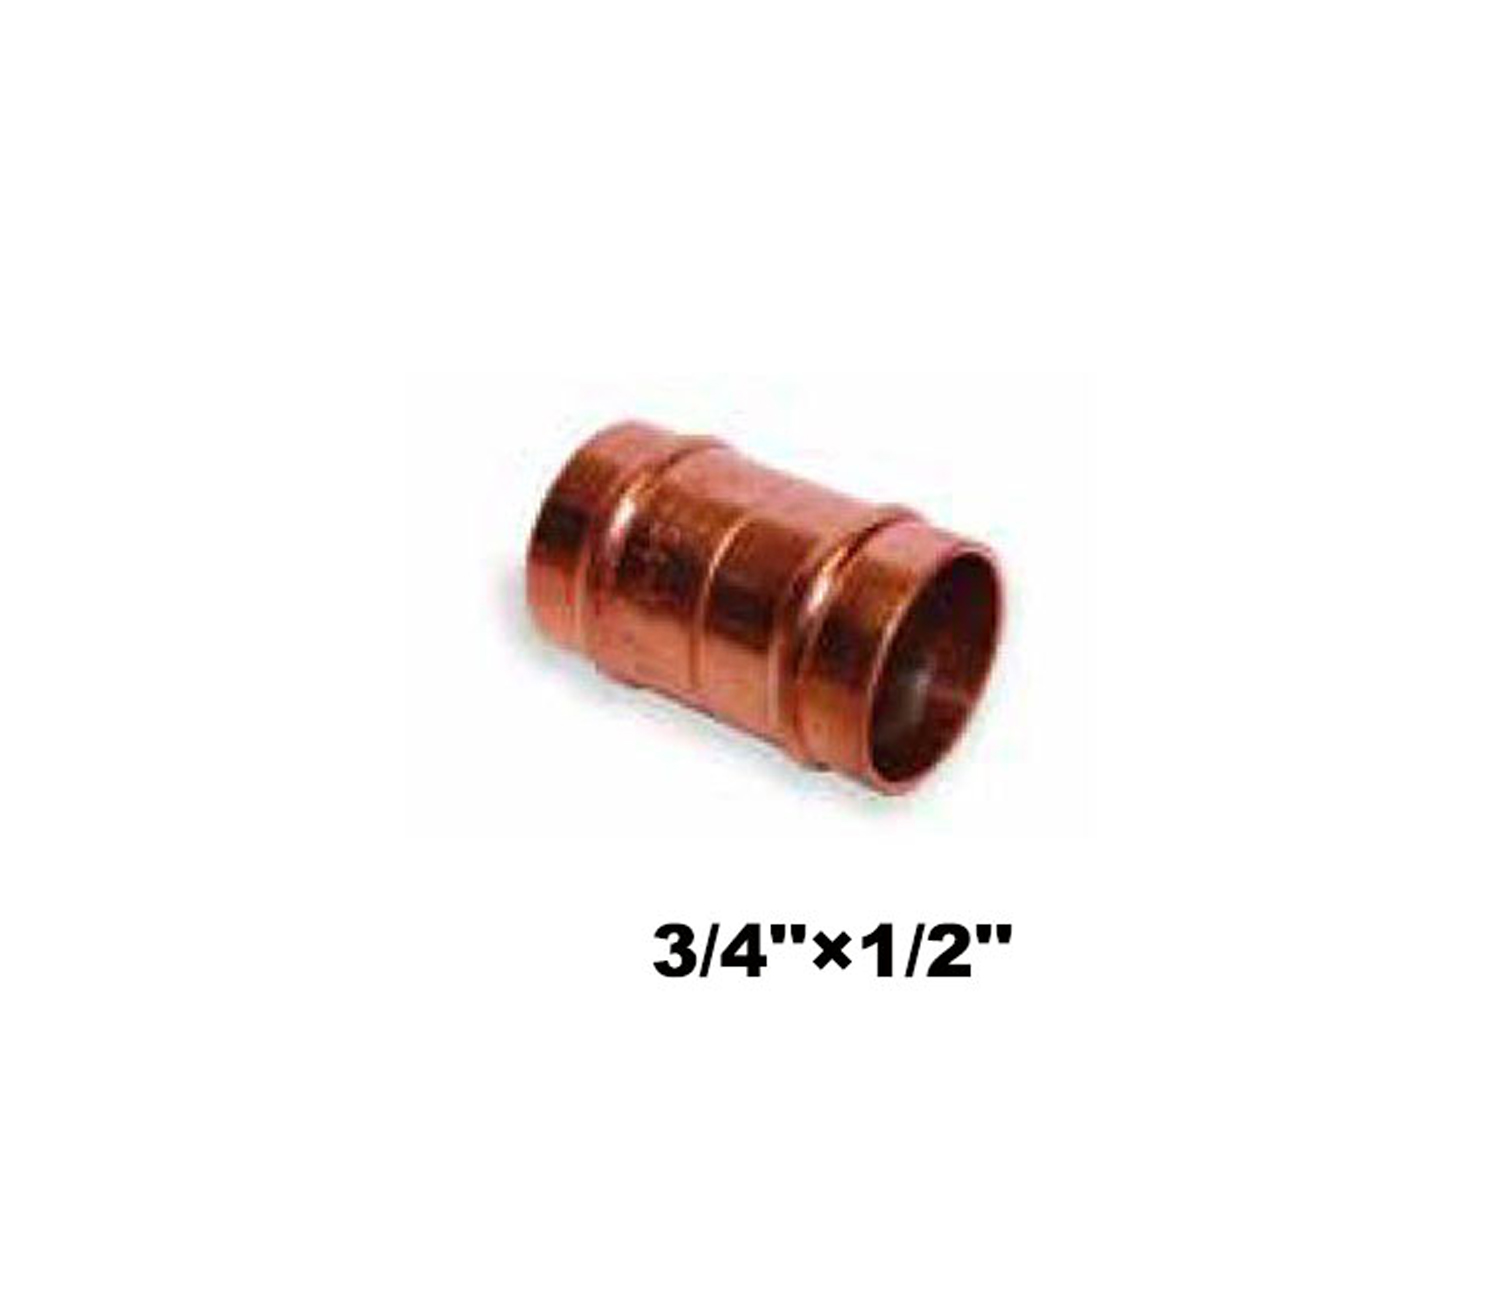 "Straight Compression Coupler C×C 3/4""×1/2"" (10021)"